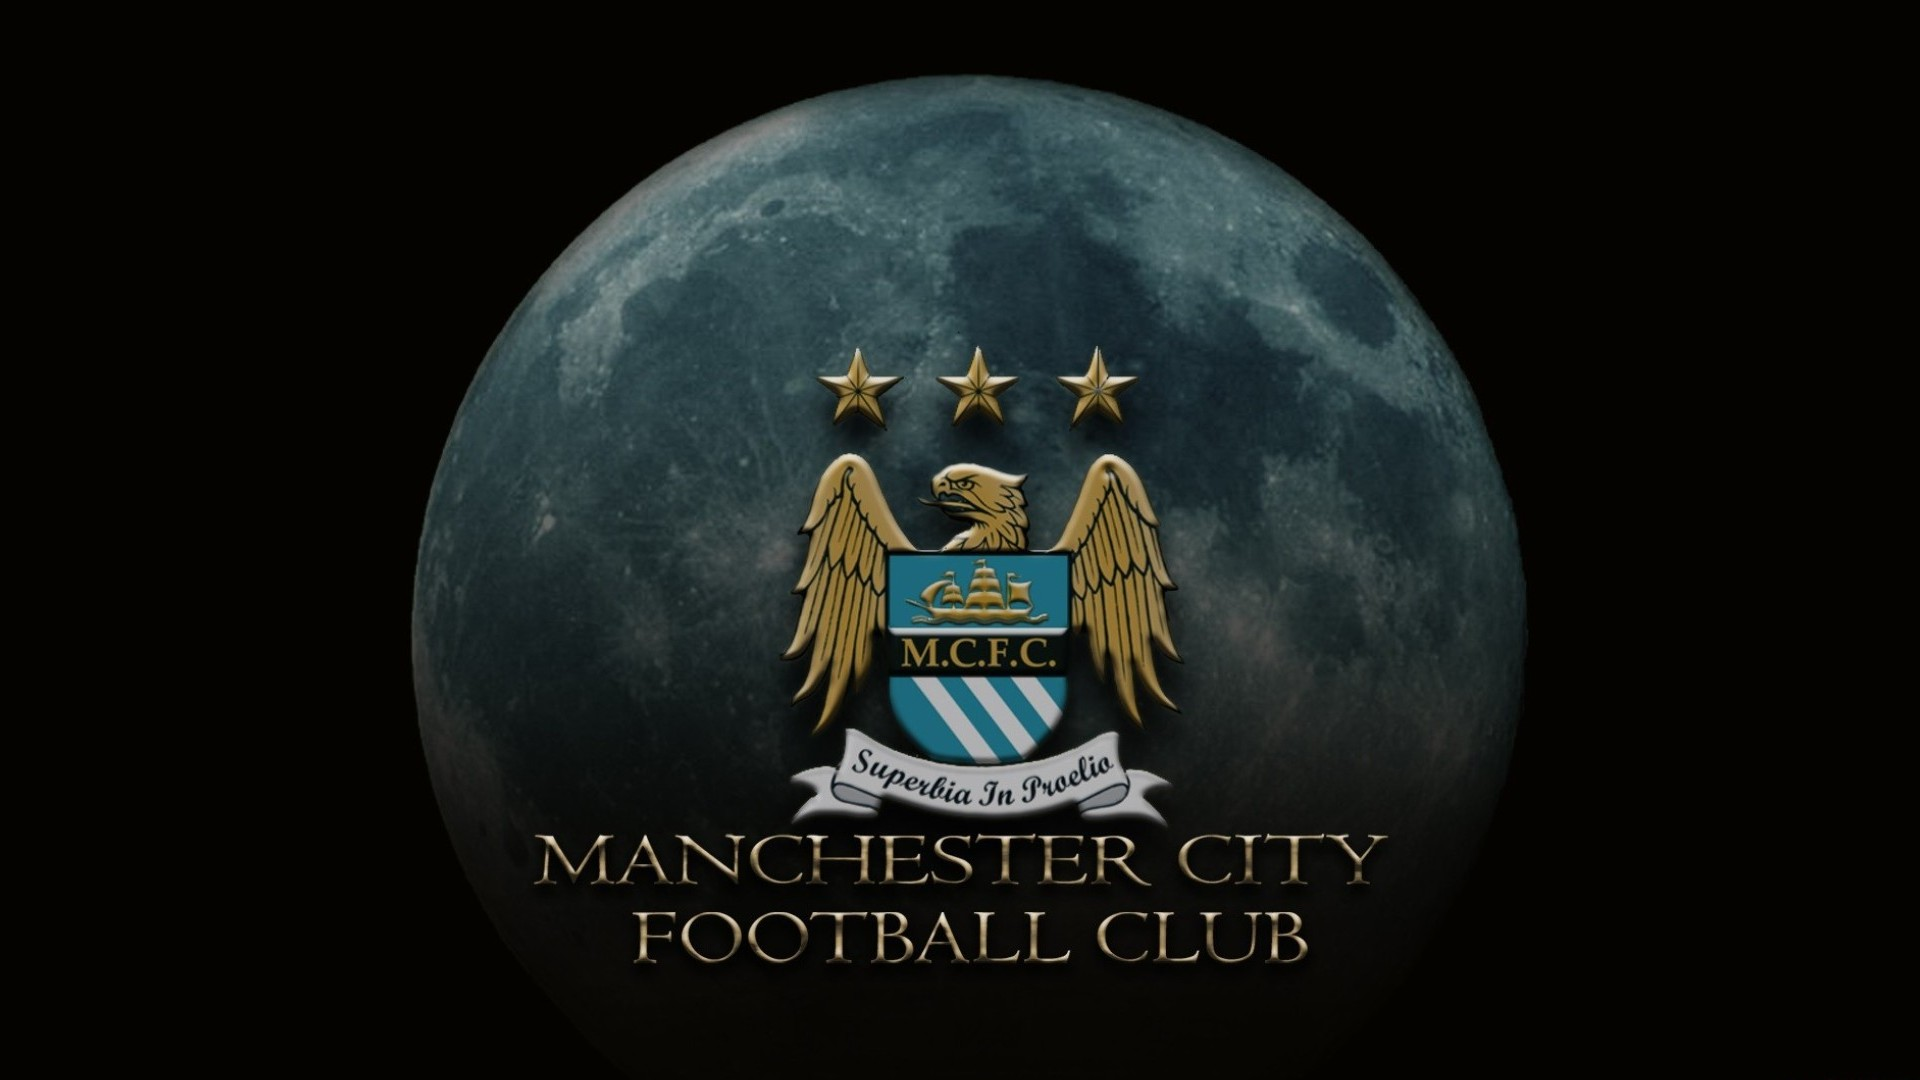 Manchester City Wallpaper: Manchester City F.C. Full HD Wallpaper And Background